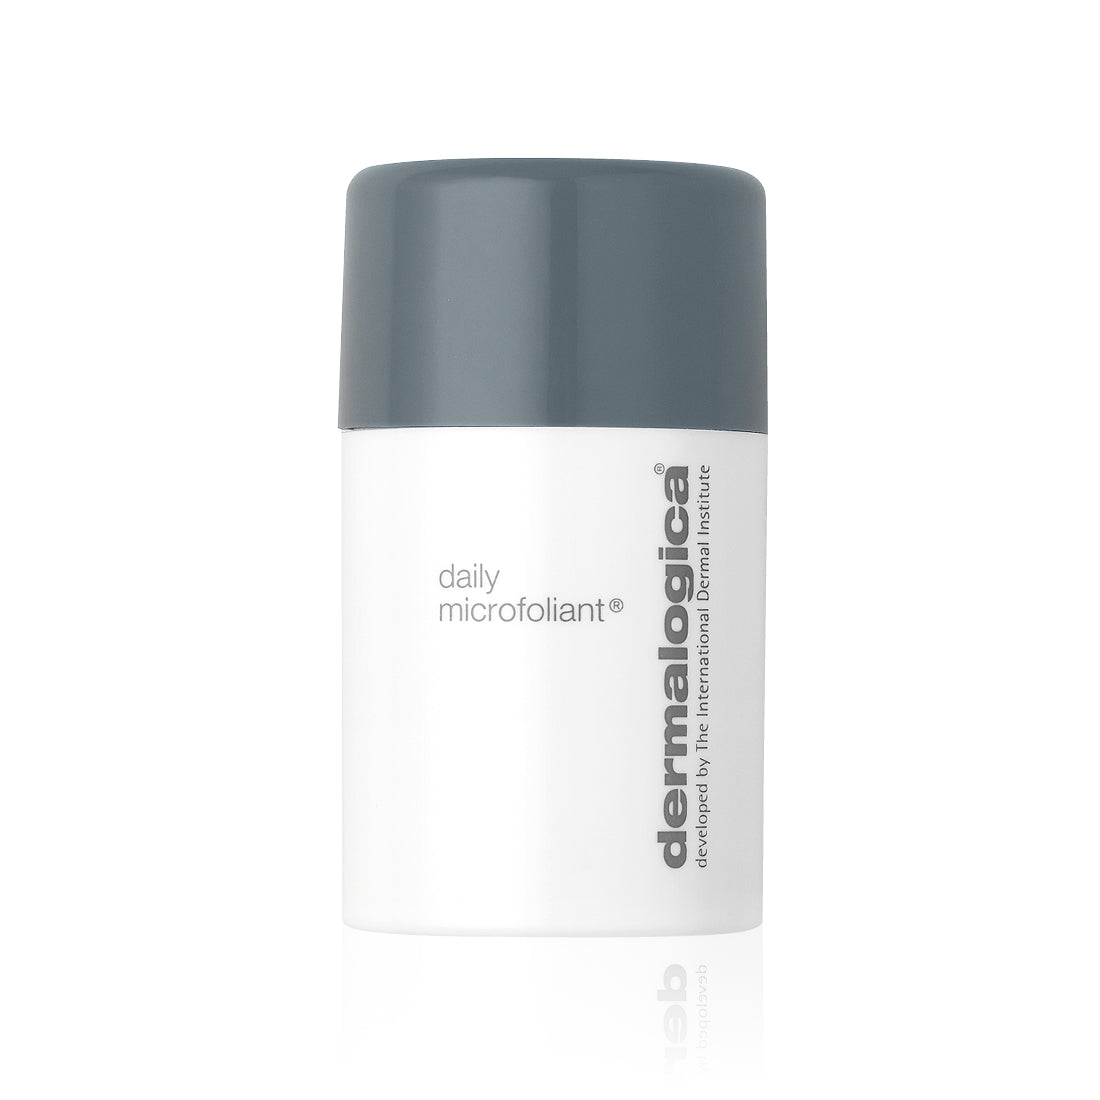 Dermalogica Daily Microfoliant Try Me Pot 13g